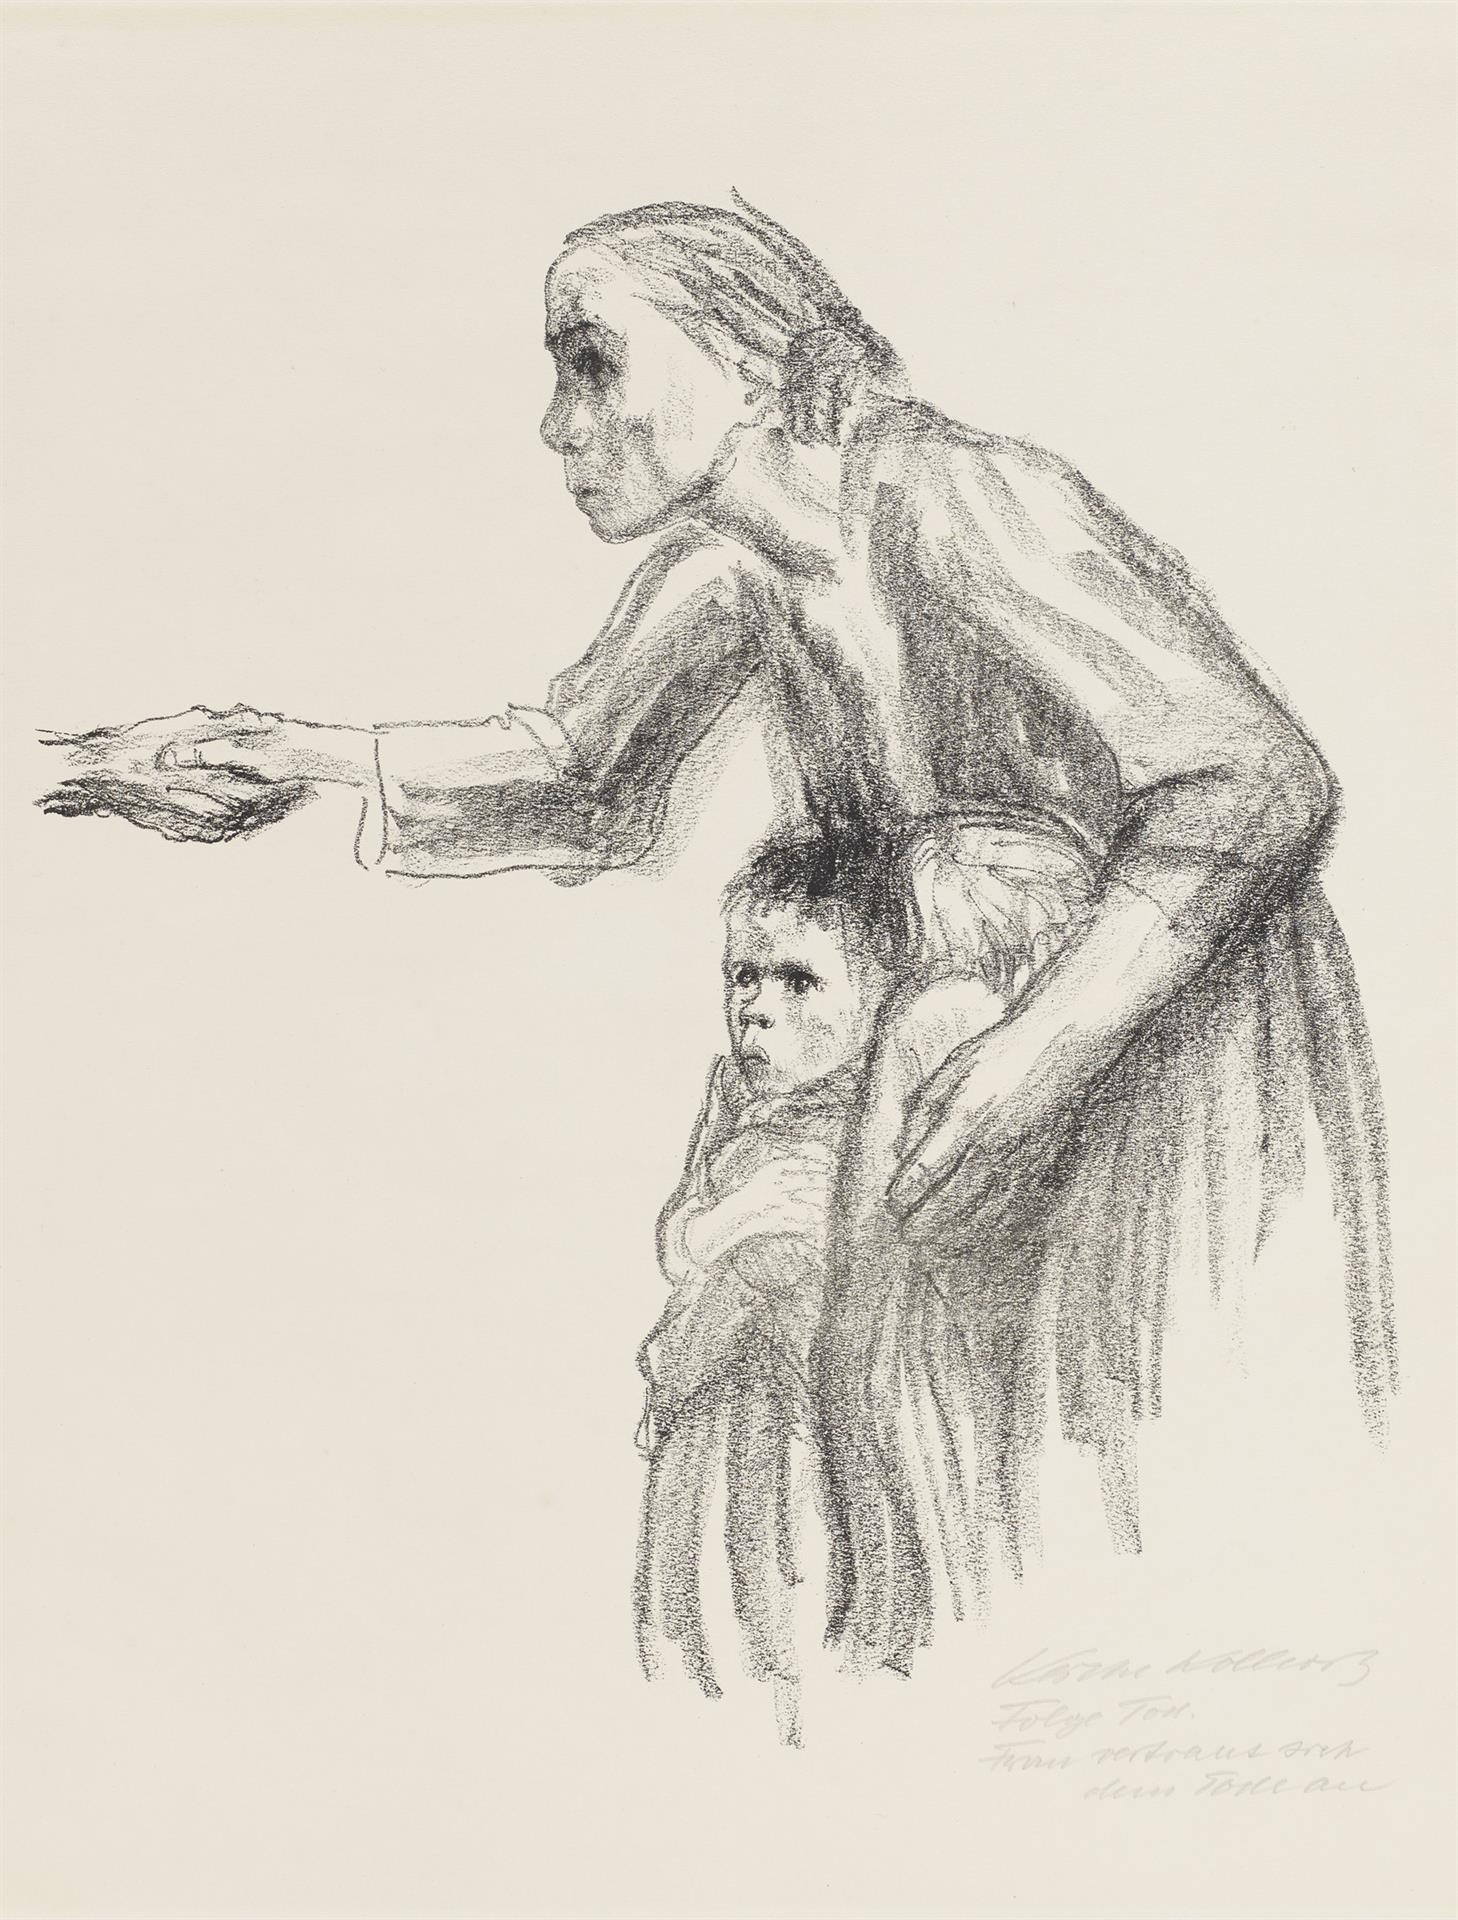 Käthe Kollwitz, Woman entrusts herself to Death, sheet 1 of the series »Death«, 1934, crayon lithograph, Kn 264 b, Cologne Kollwitz Collection © Käthe Kollwitz Museum Köln